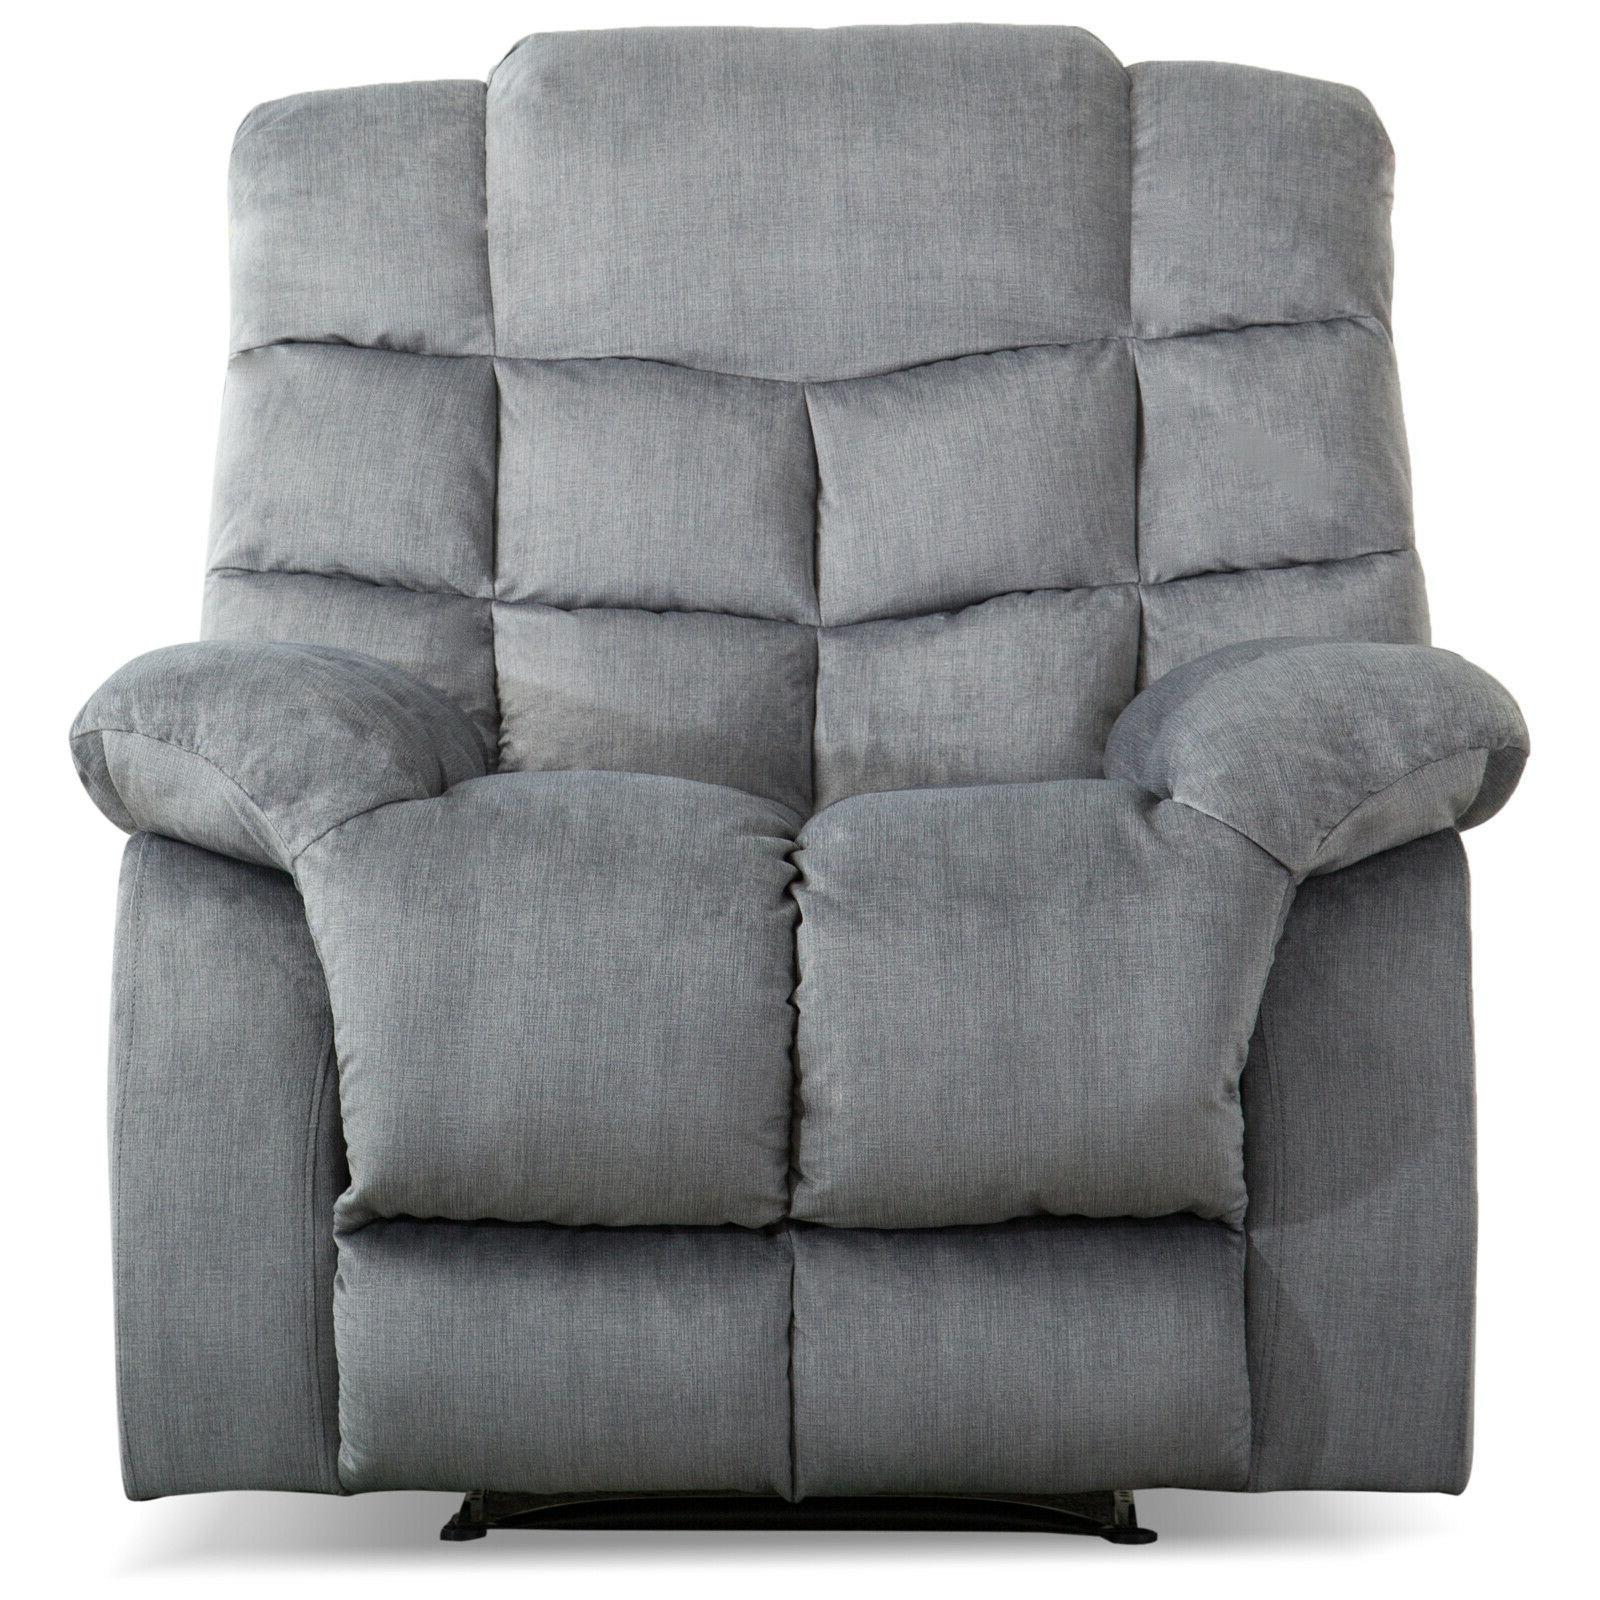 Fabric Chair Overstuffed Manual Couch Thickened Backrest